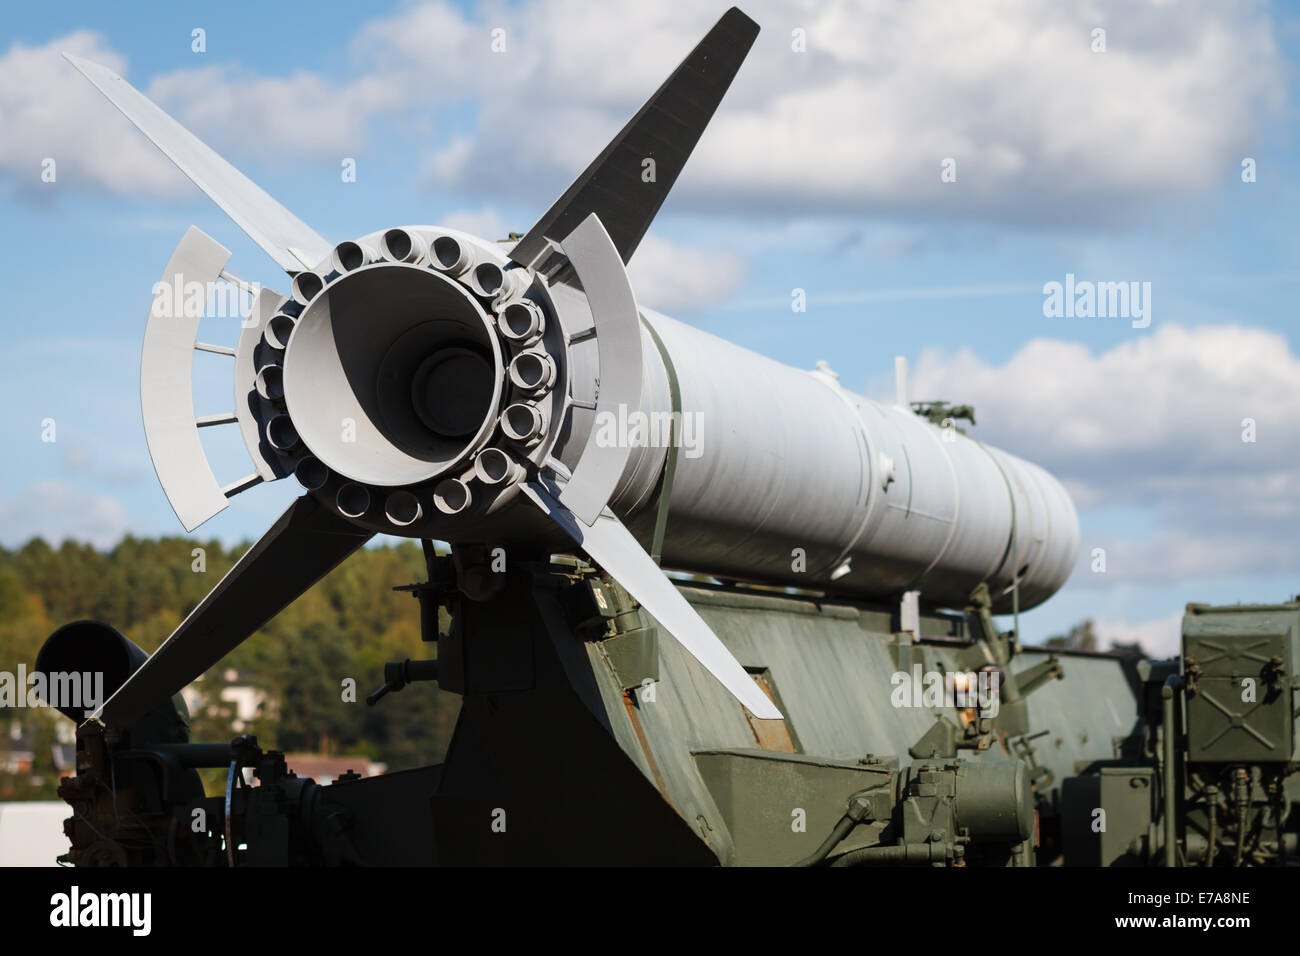 War rocket on an armored military truck. - Stock Image